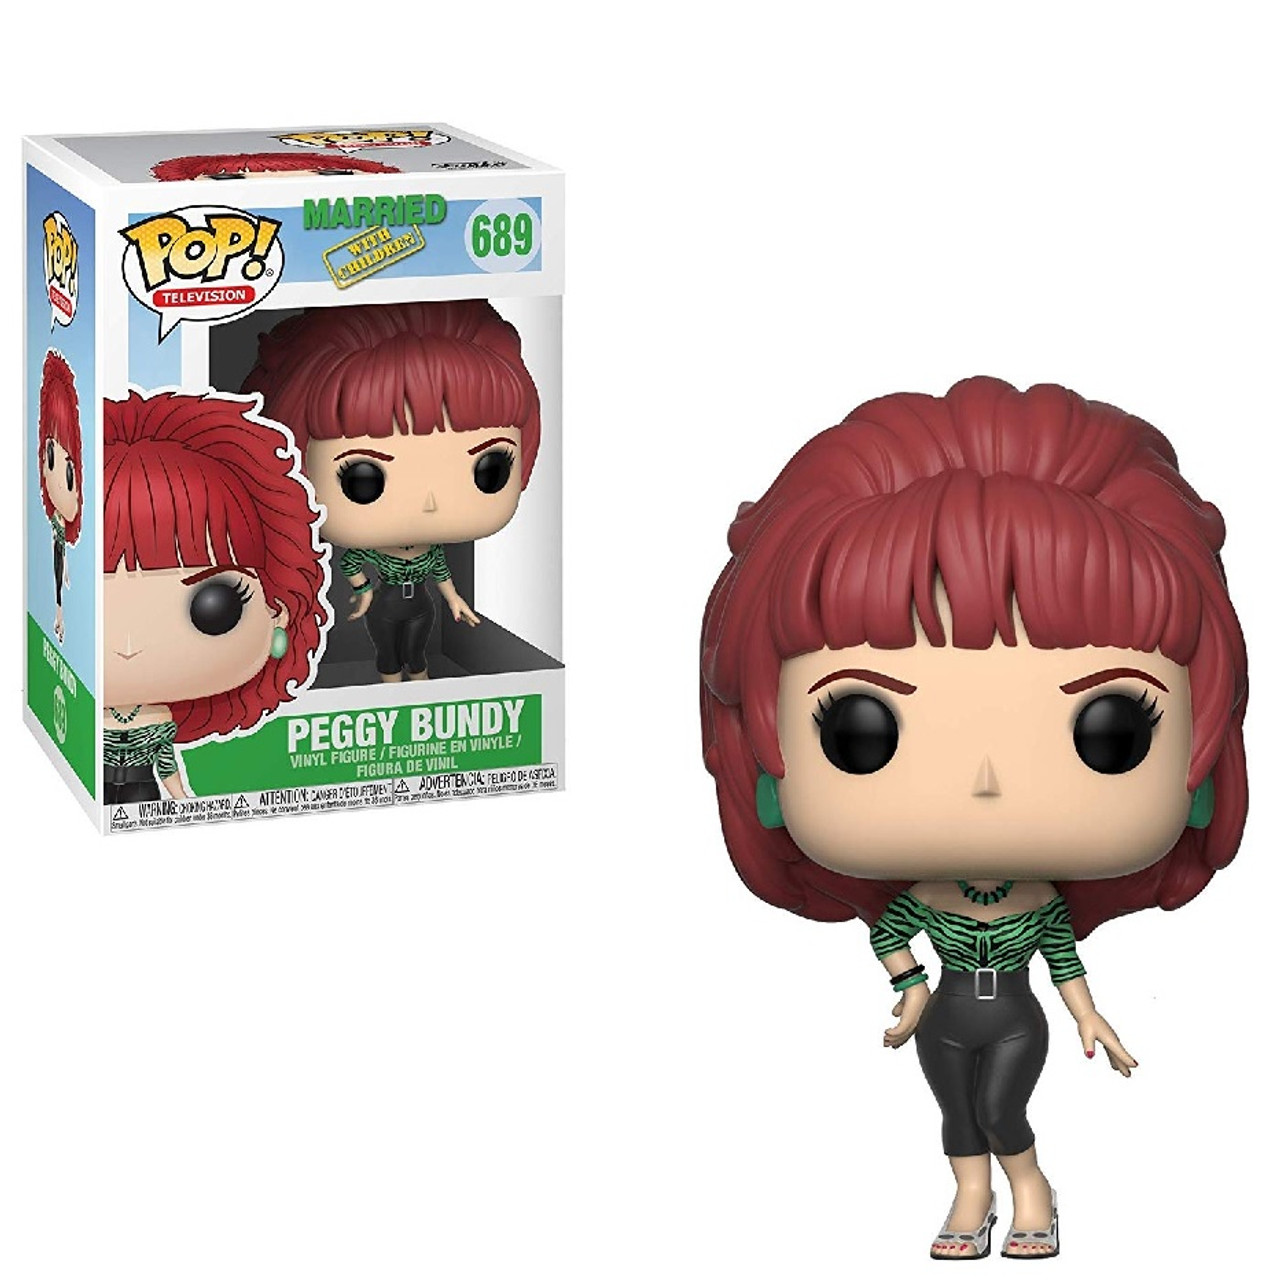 Married With Children Christmas.Married With Children Peggy Bundy Pop Funko Vinyl Figure 32221